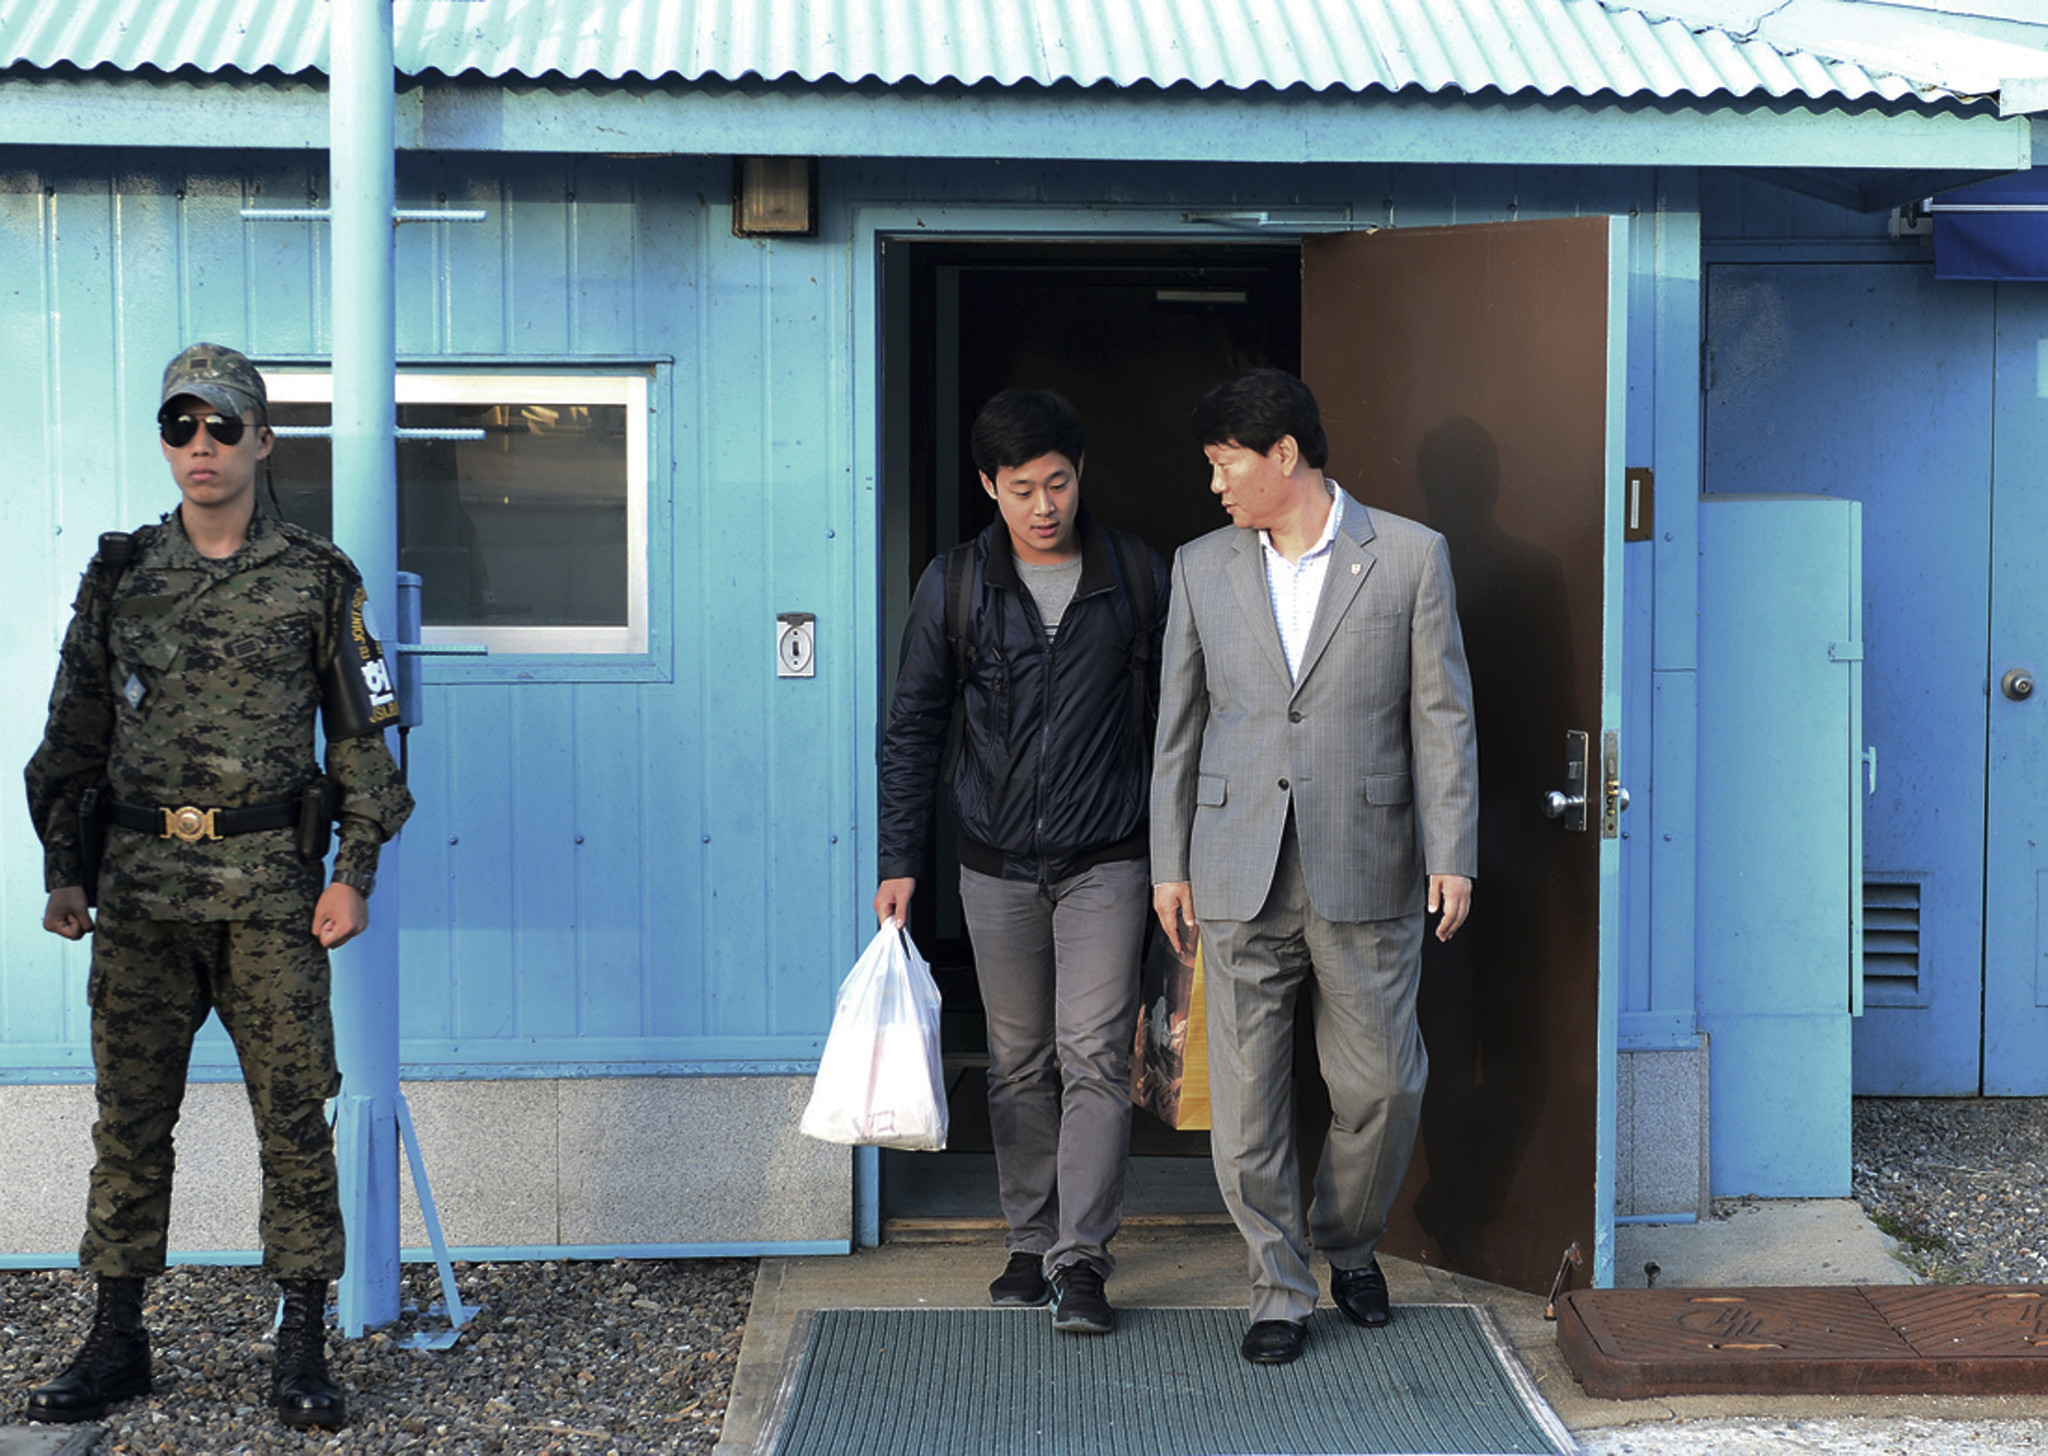 Seoul: North Korea releases detained South Korean student